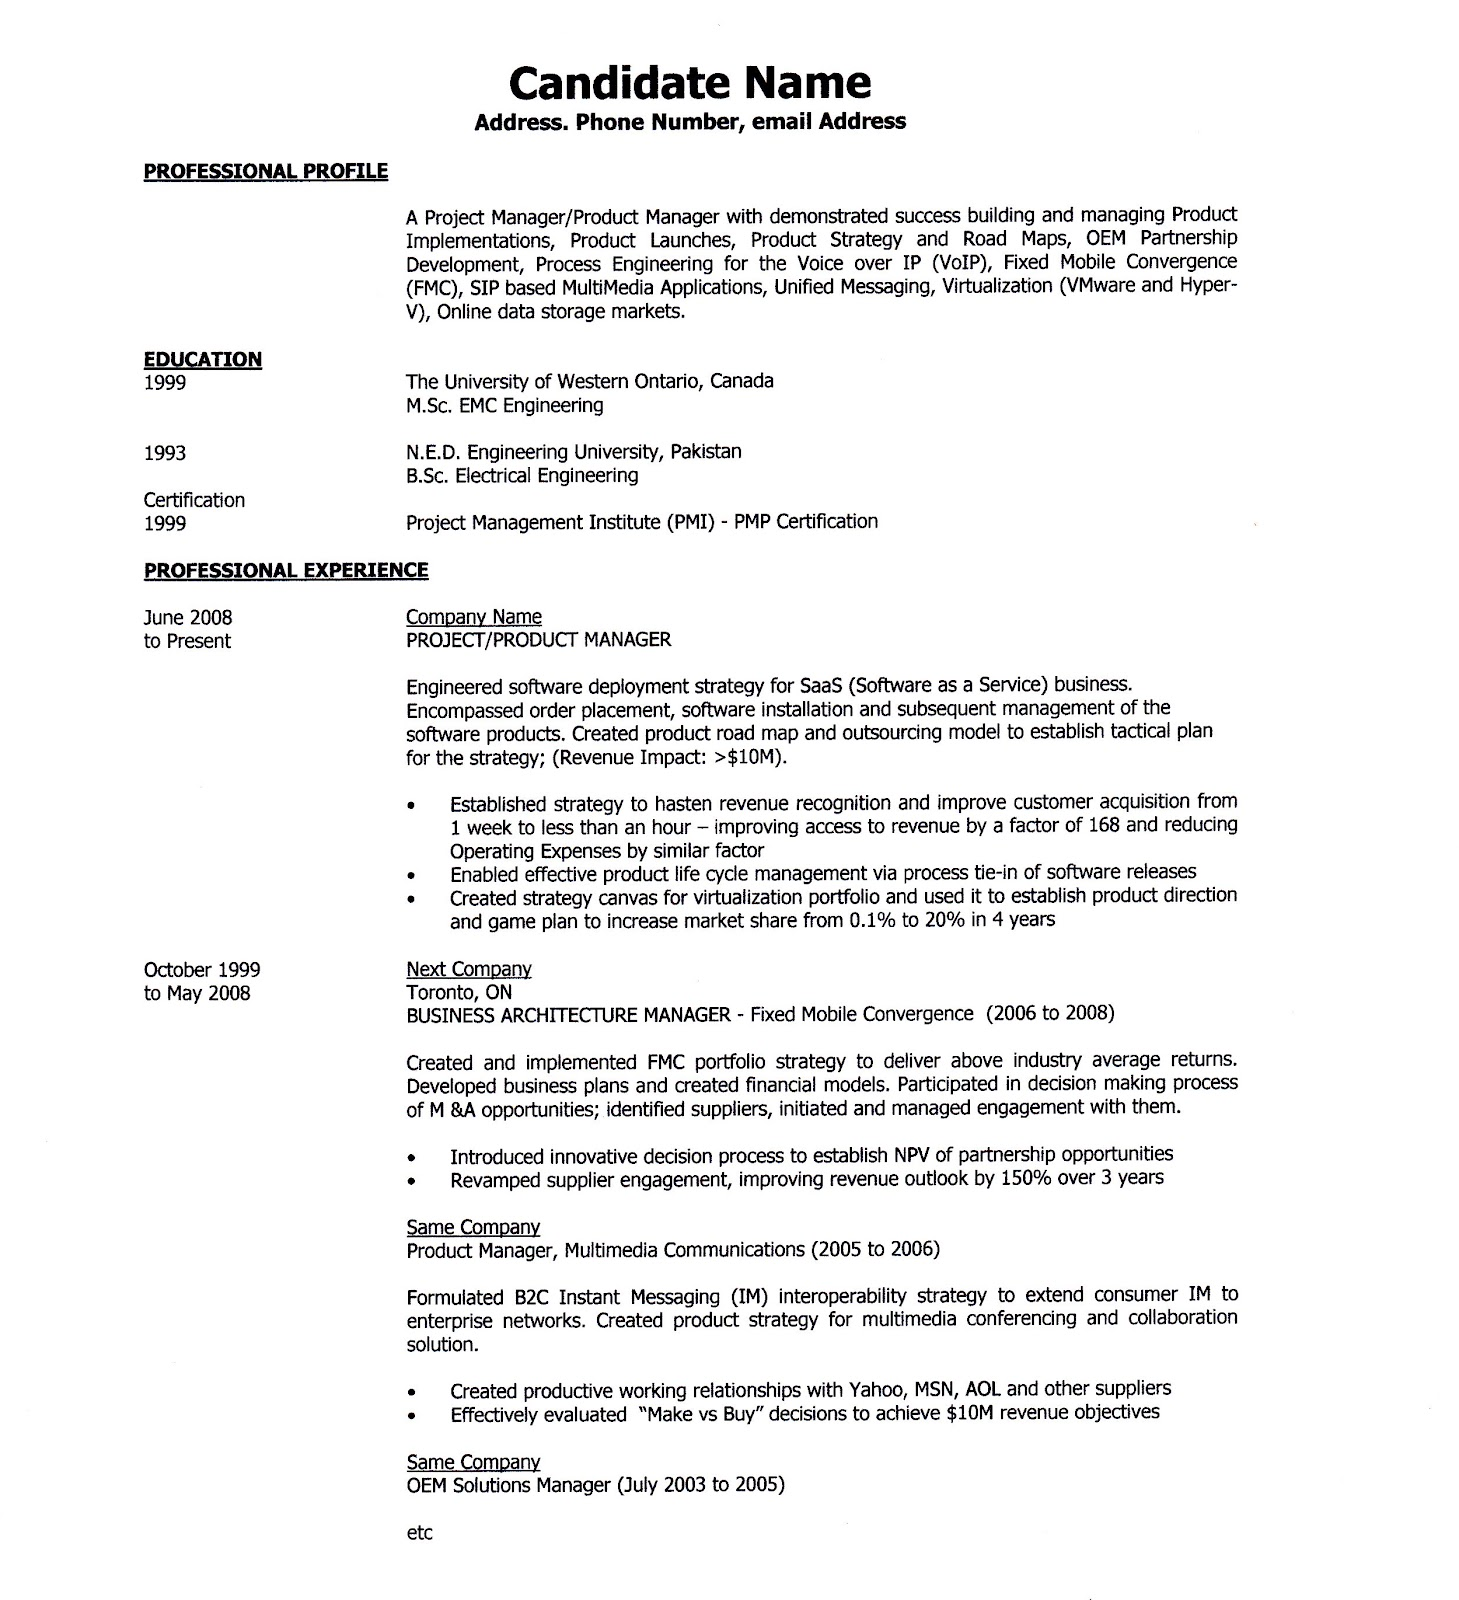 lynne carlson carlyn services inc formatting your resume